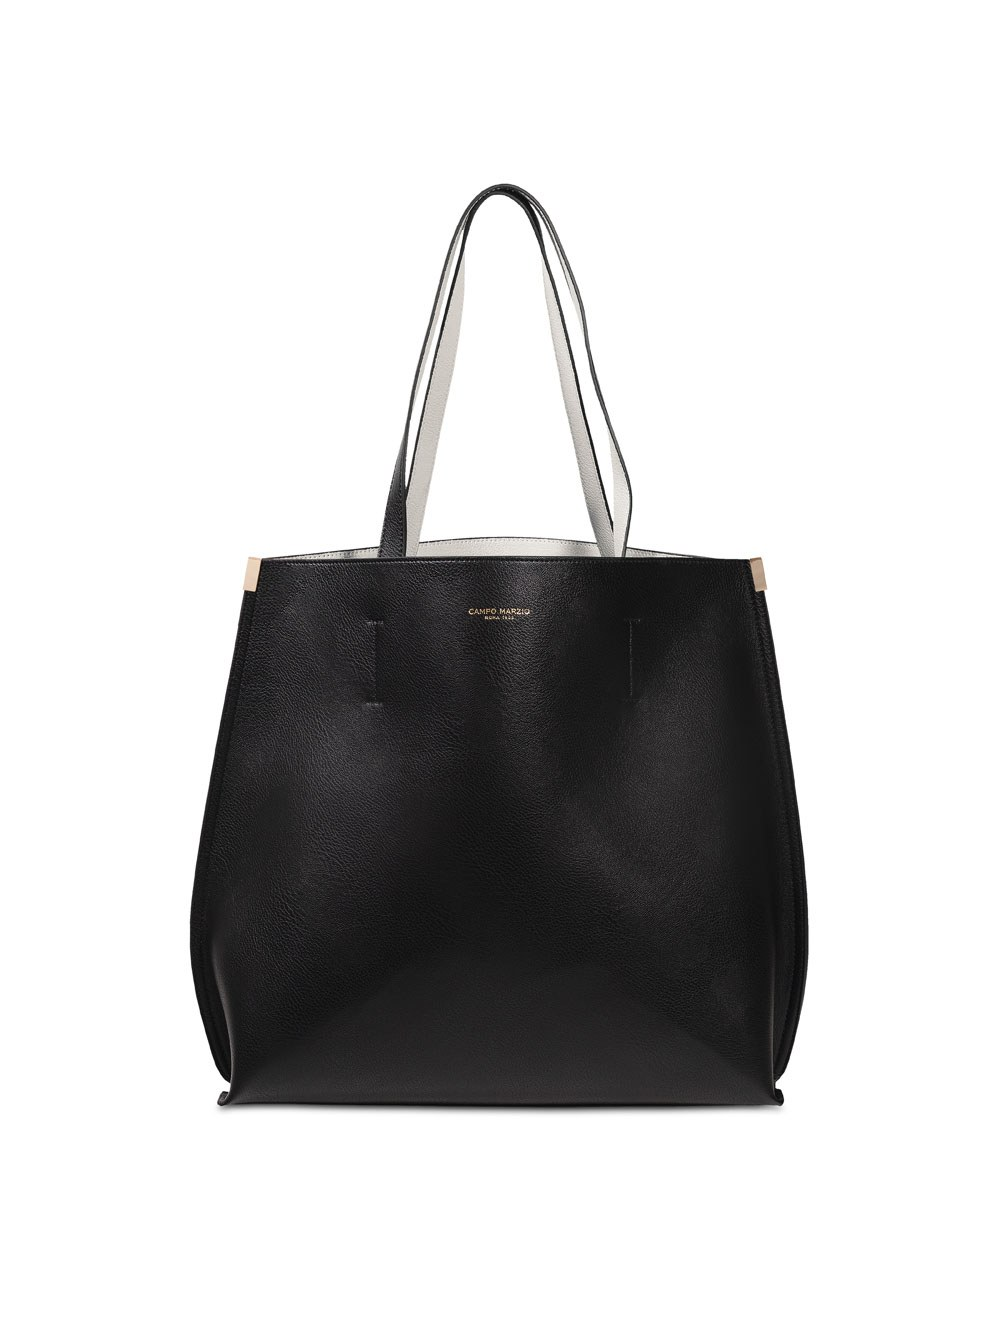 Double Tote Bag Special - Black